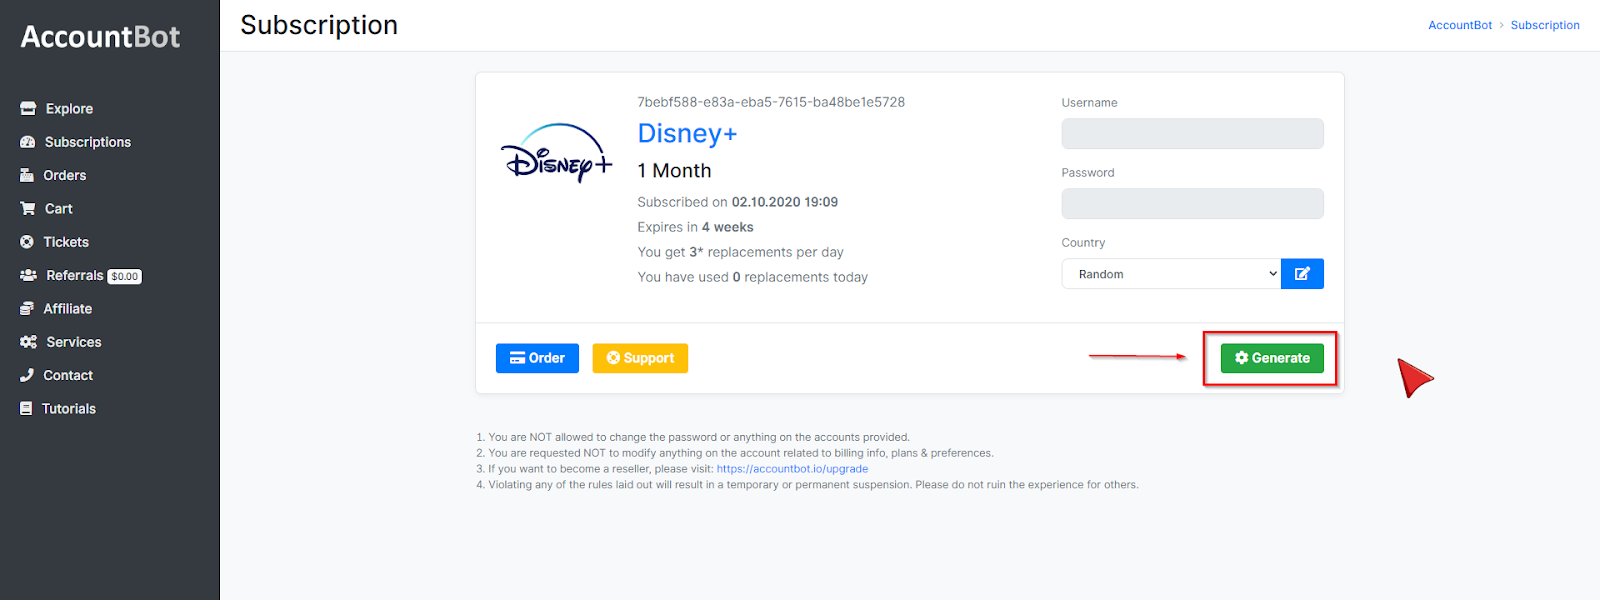 Disney Plus Account Page on AccountBot